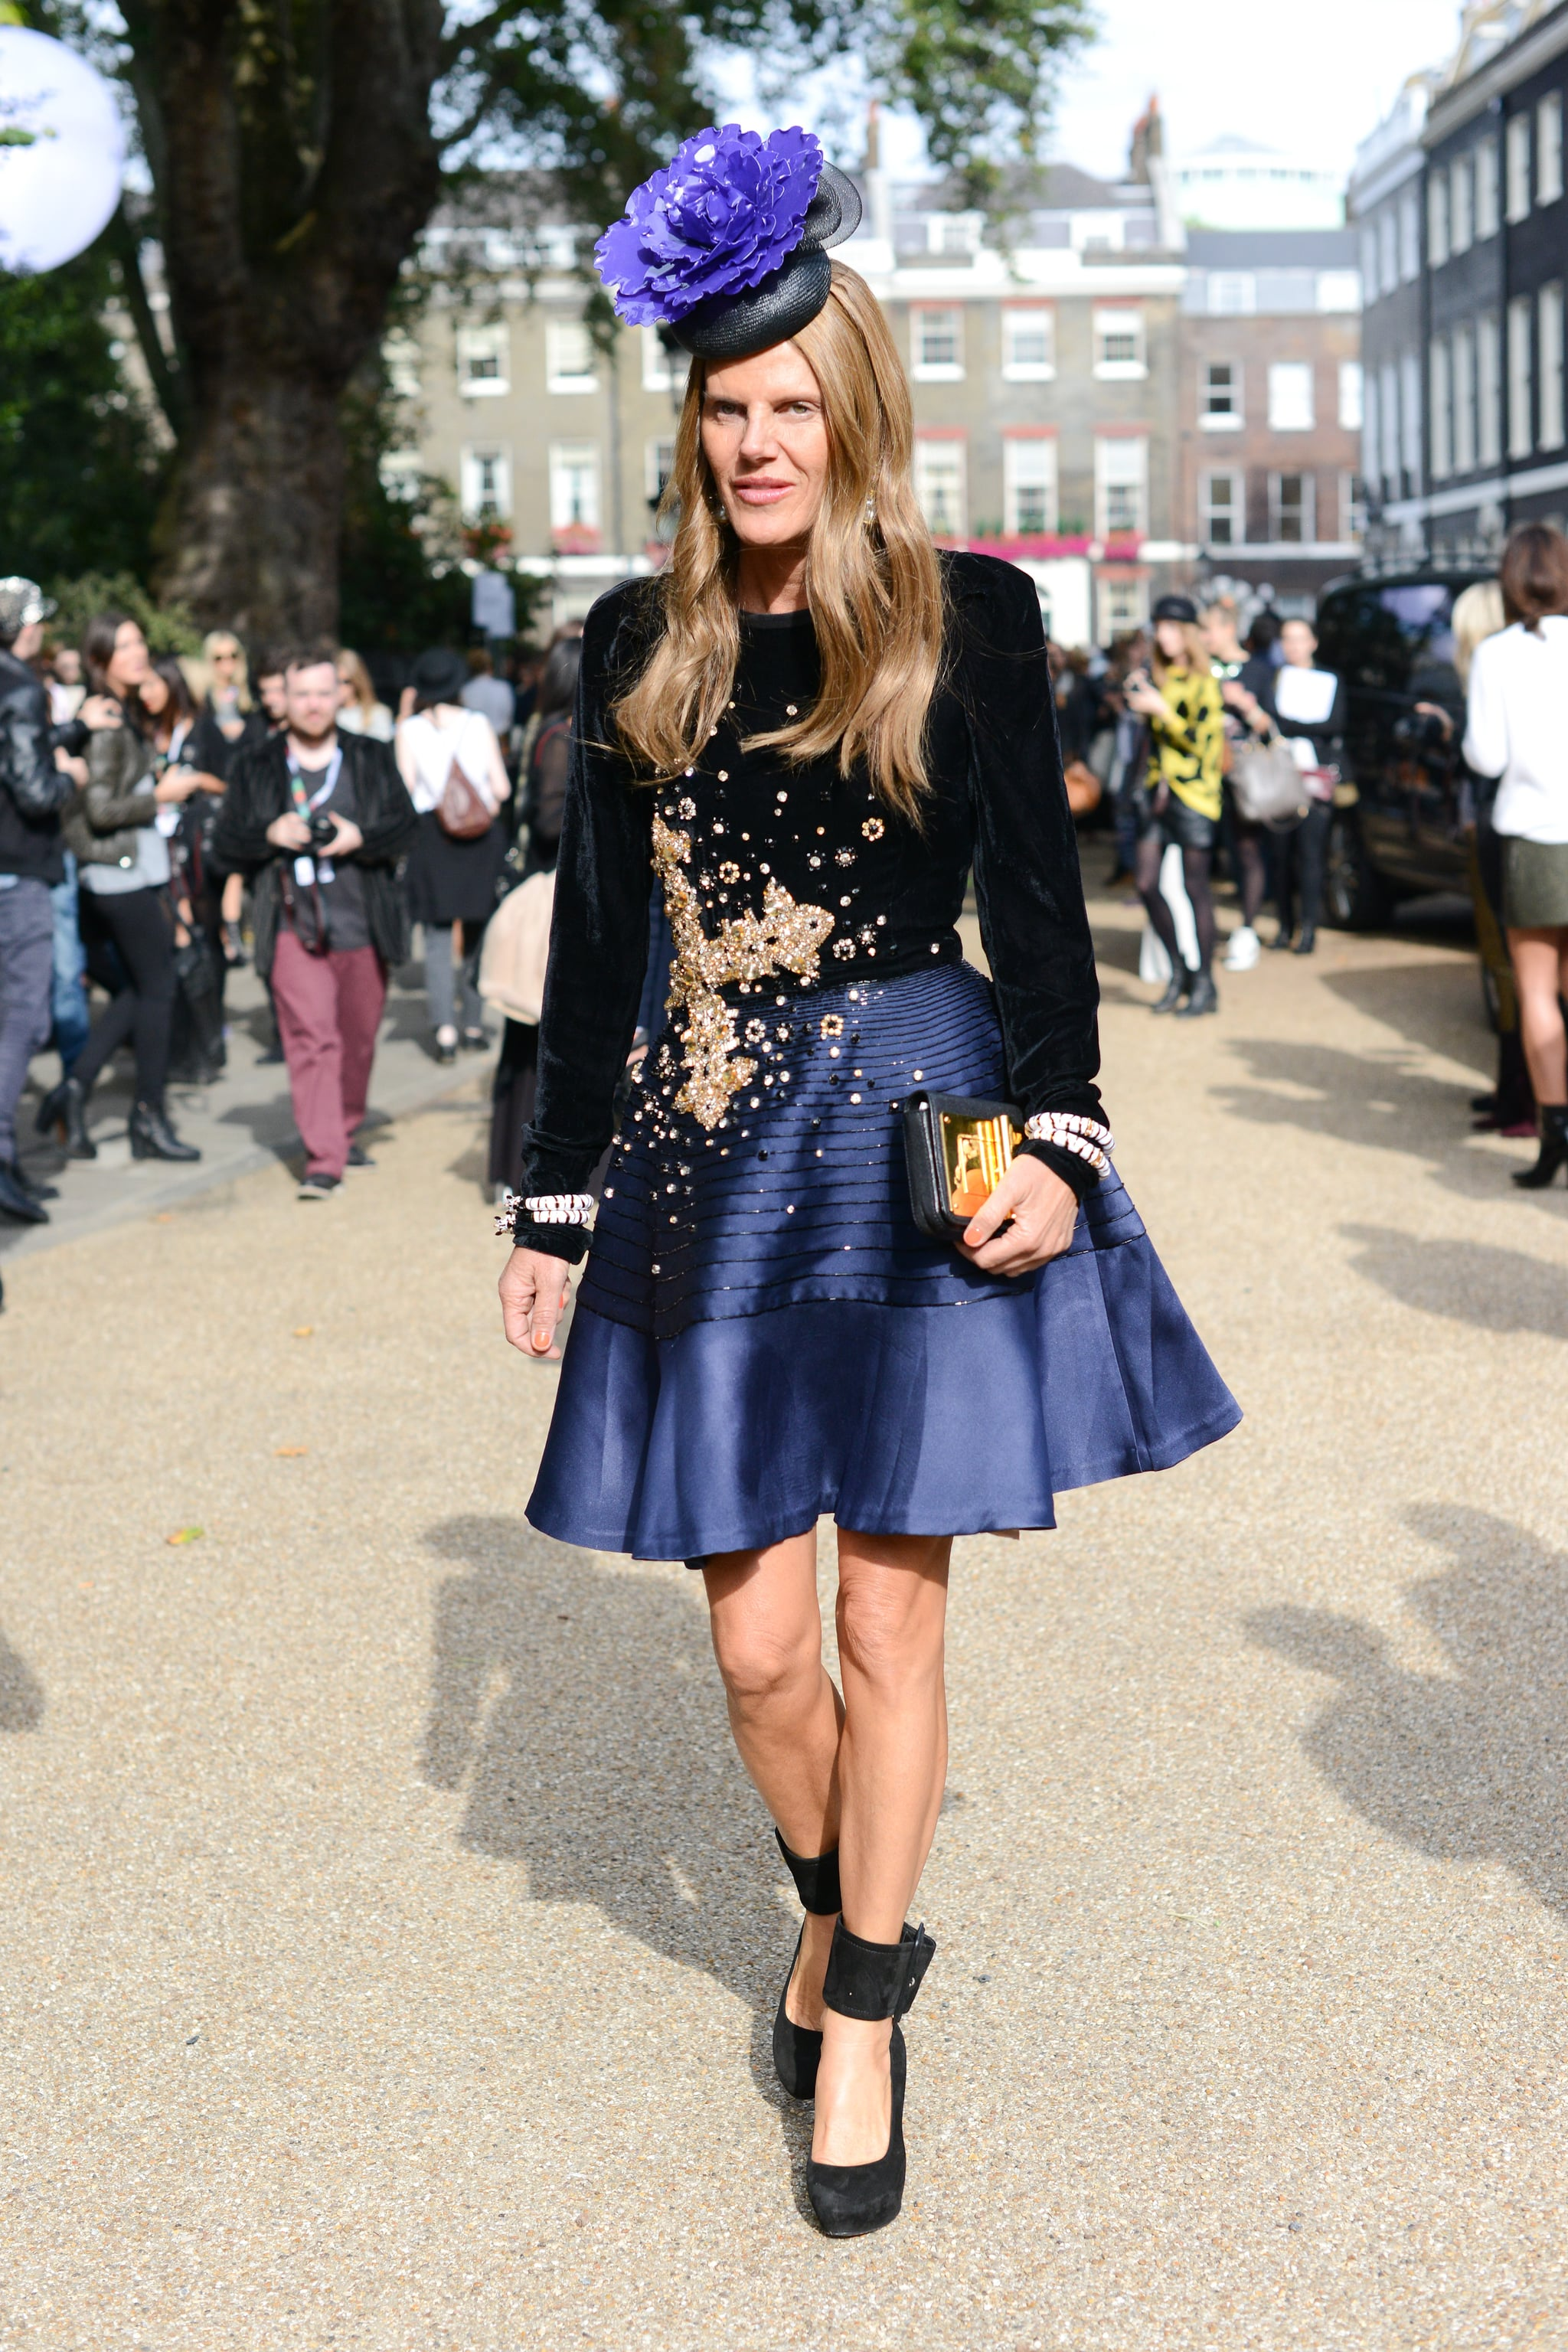 Anna Dello Russo stepped out in full regalia — with thick ankle-strap pumps and a purple fascinator completing her dramatic look.